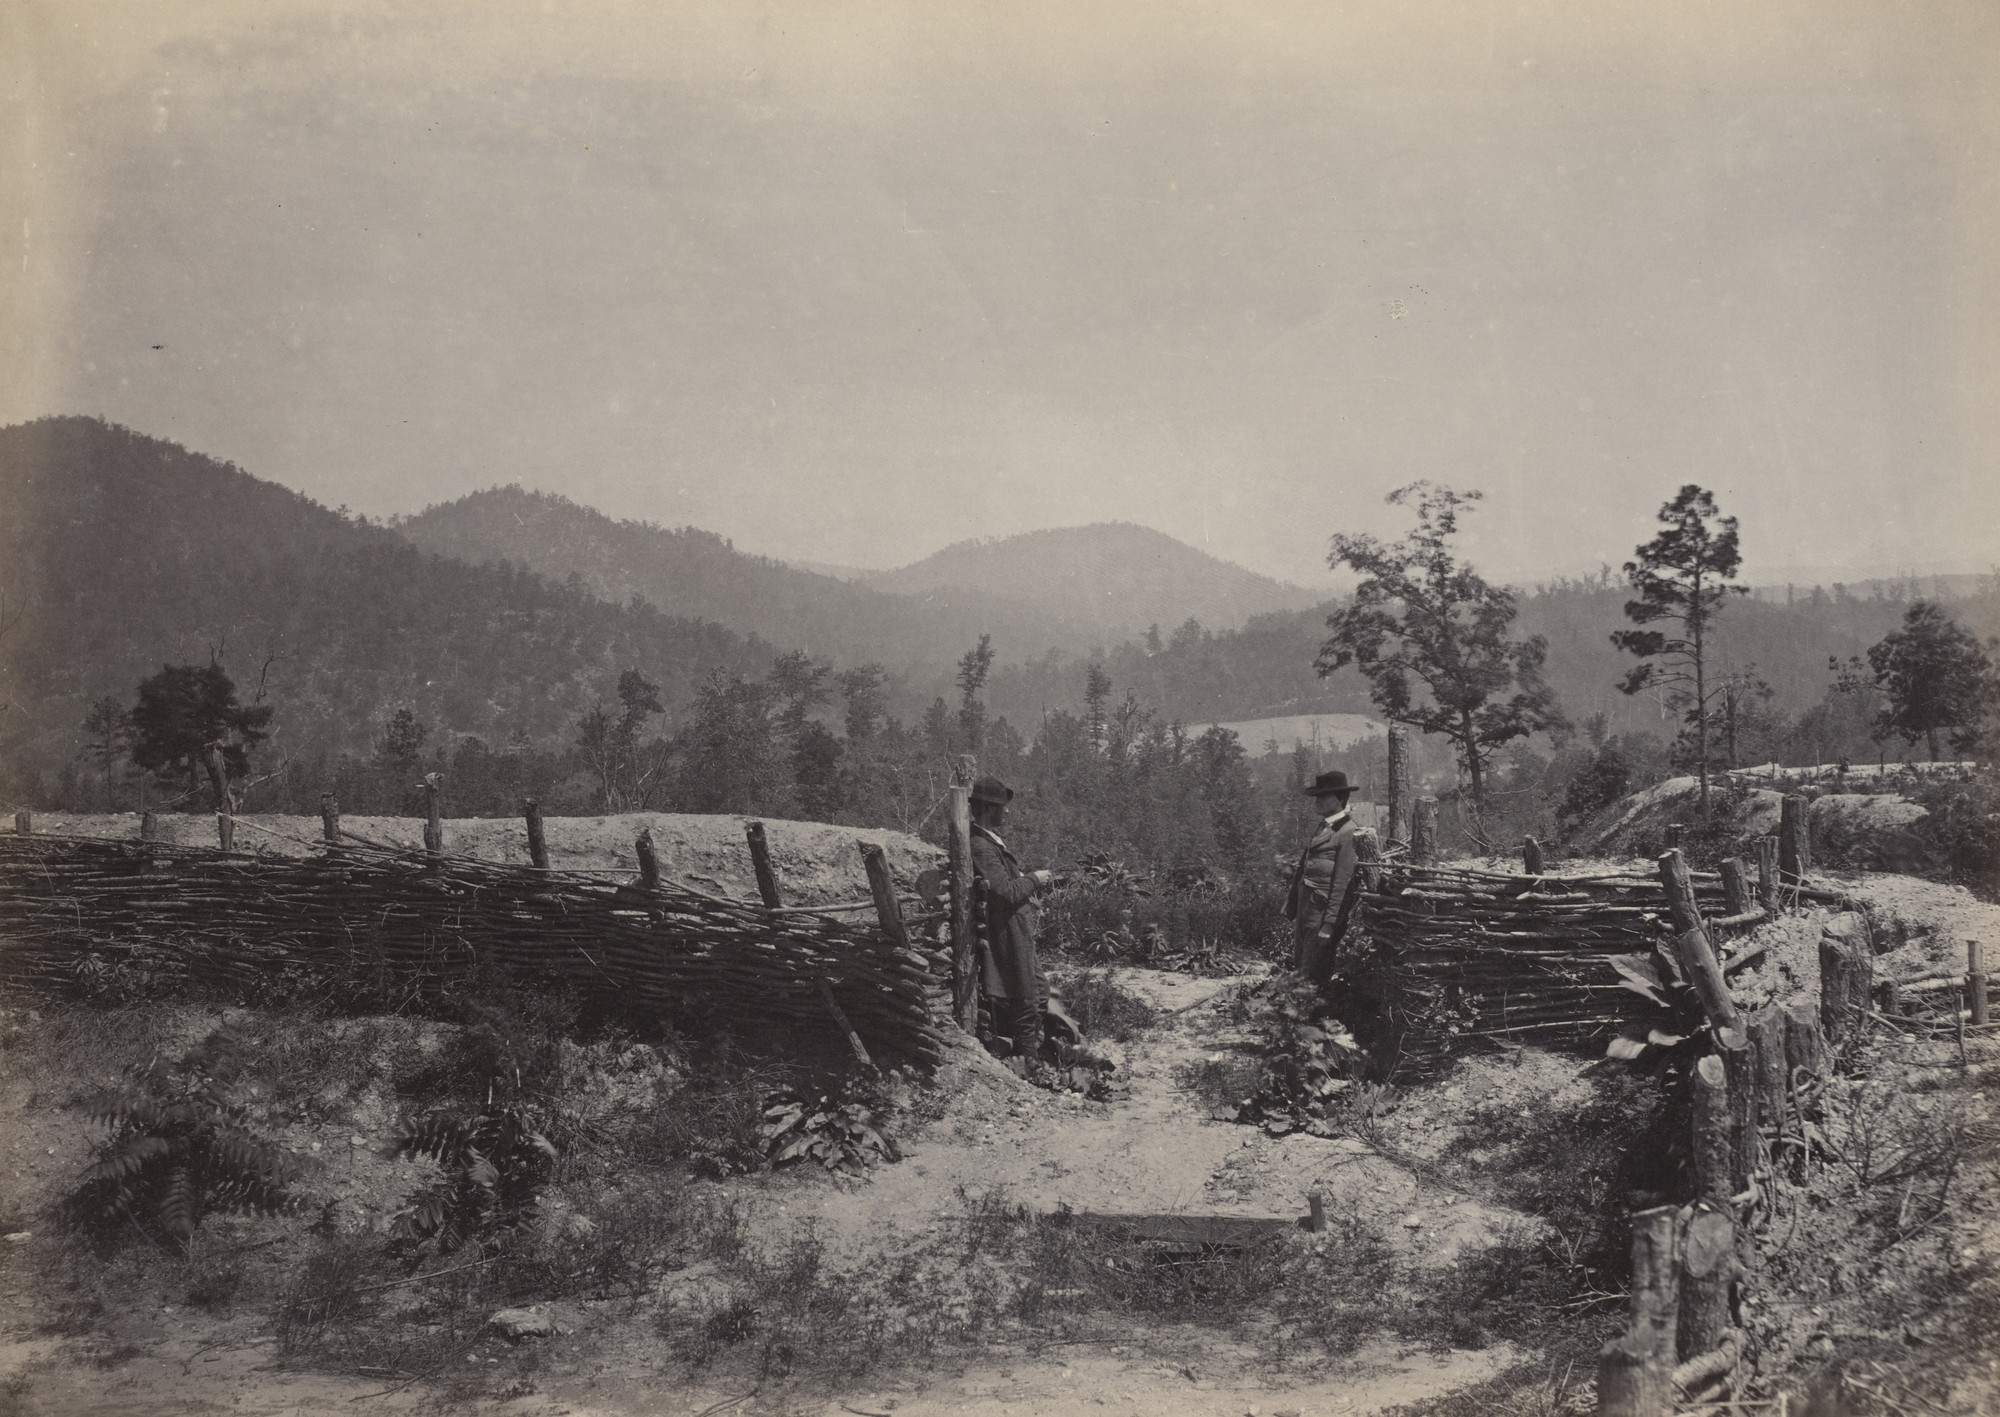 George Barnard. The Allatoona Pass from the album Photographic Views of Sherman's Campaign. 1864-65